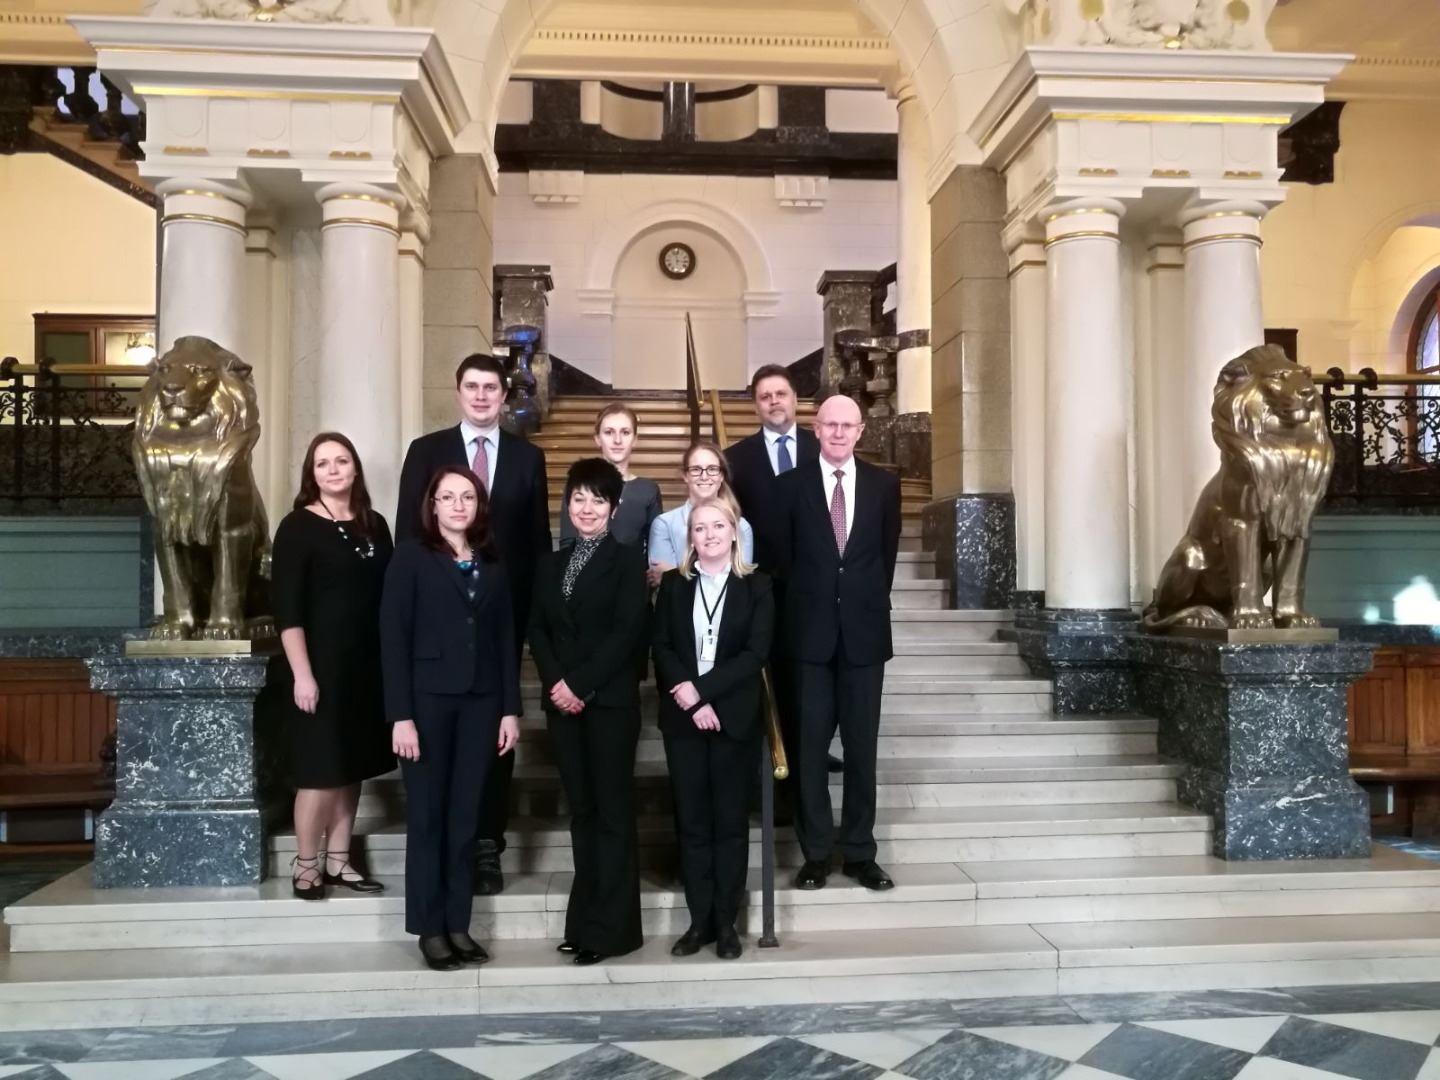 11.10.2017. Within the framework of the Nordic-Baltic Mobility Program for Public Administration, the Department of Civil Cases received support for the project